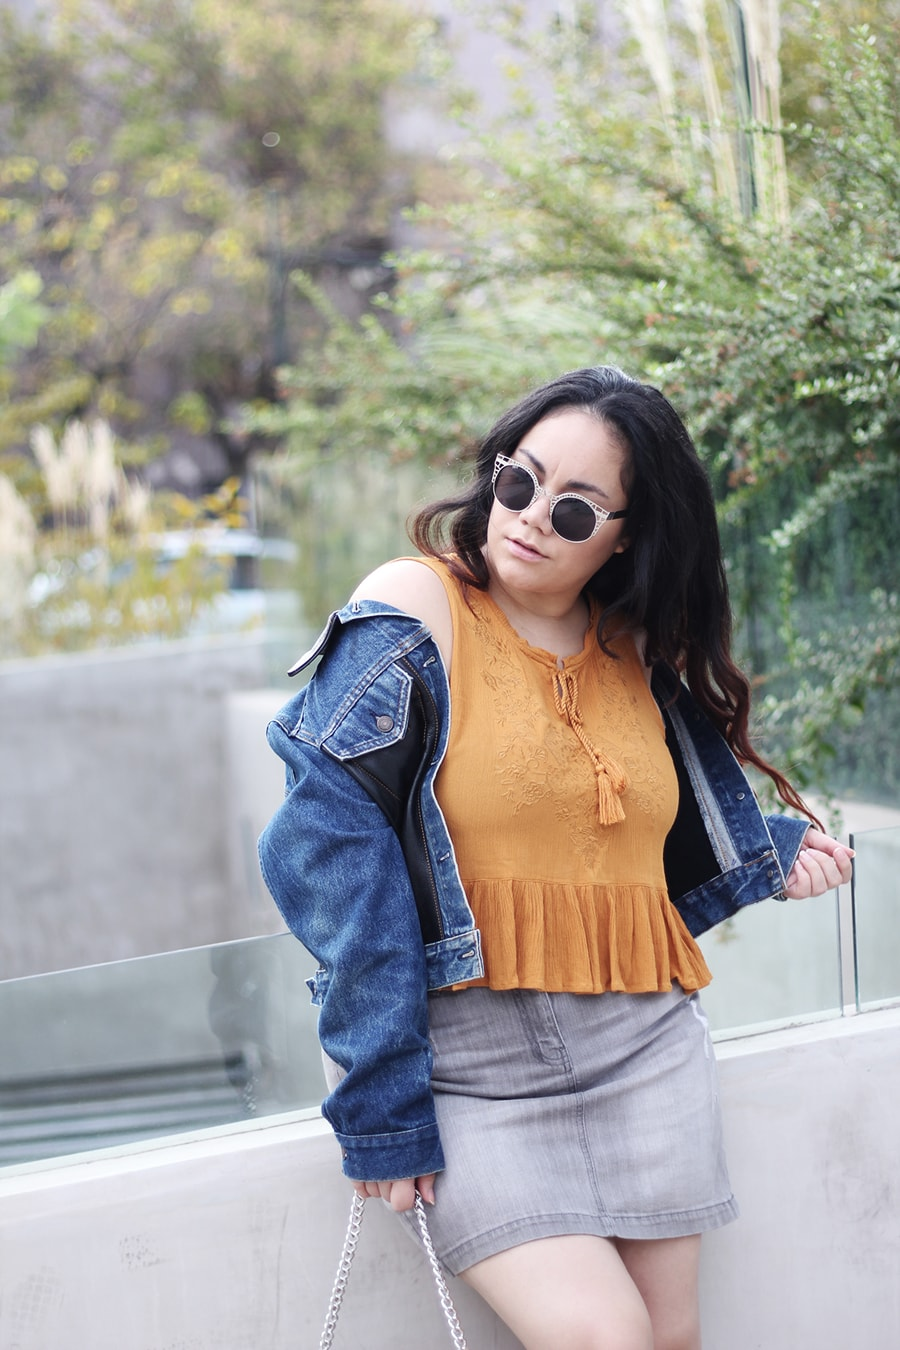 Denim on denim off the shoulders jacket - crop top plus size outfit ideas | golden strokes